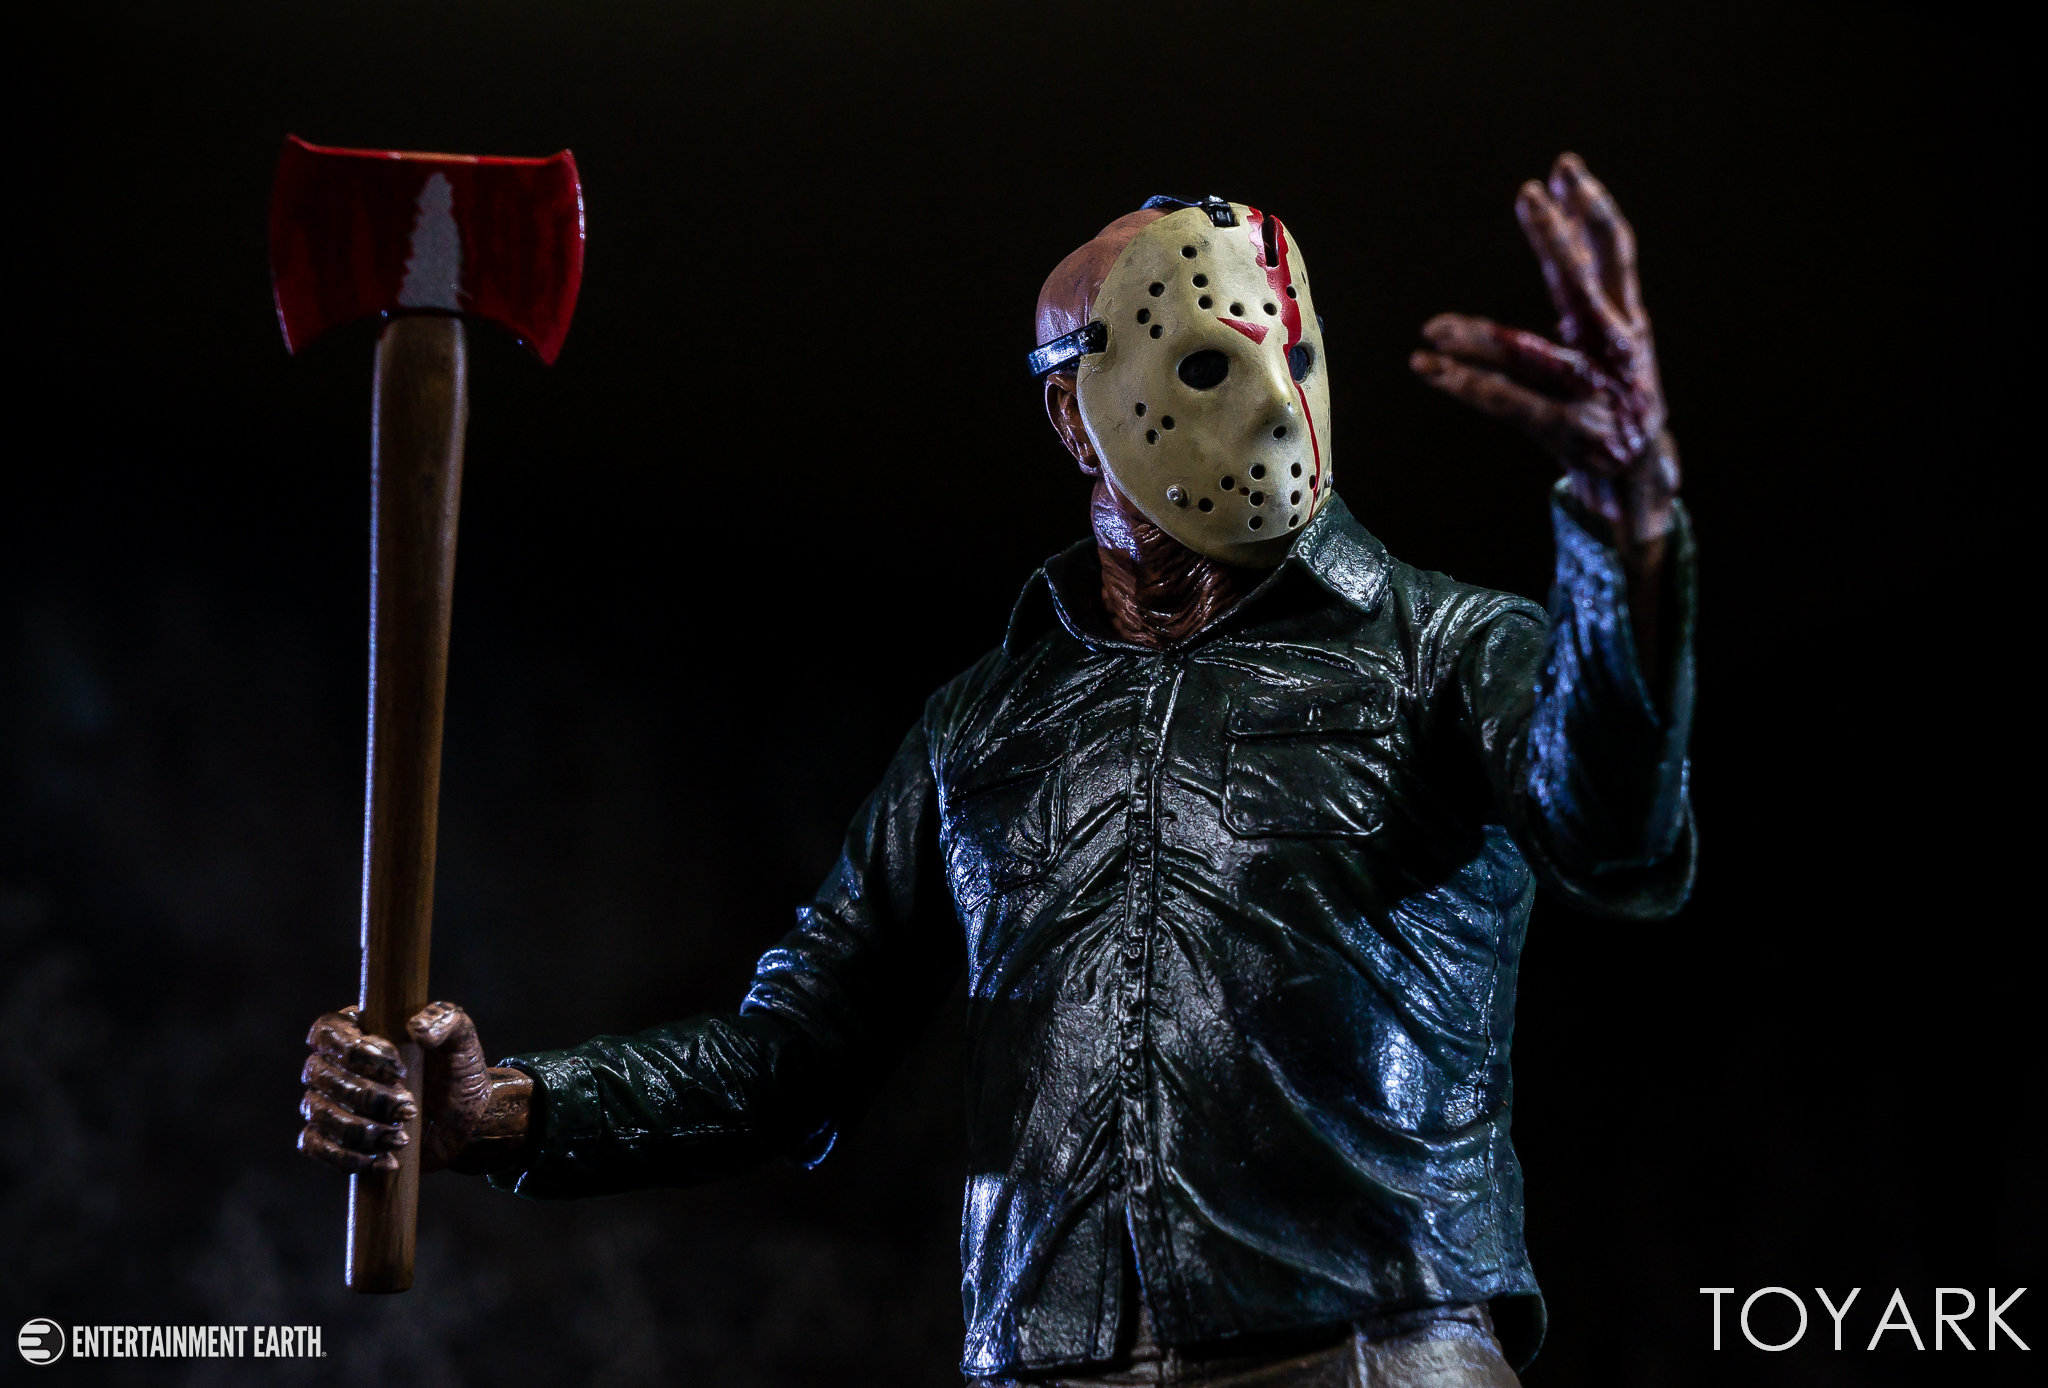 https://news.toyark.com/wp-content/uploads/sites/4/2018/10/NECA-Ultimate-Dream-Jason-040.jpg